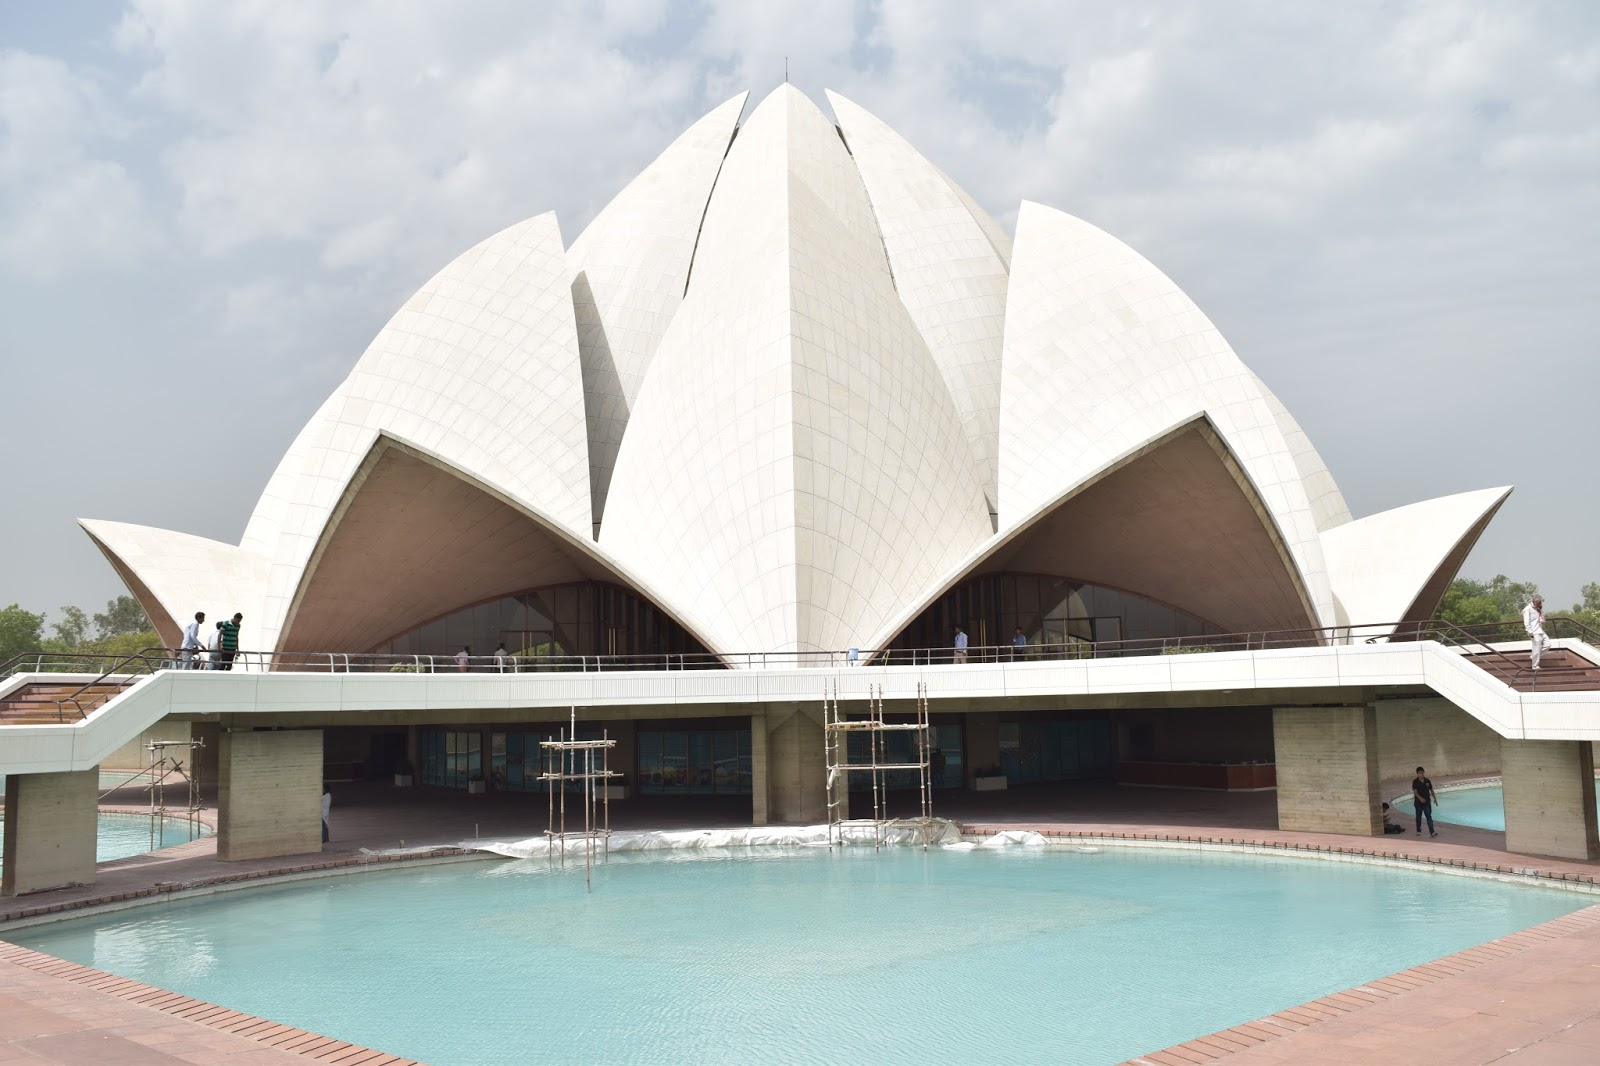 pics of lotus temple delhi